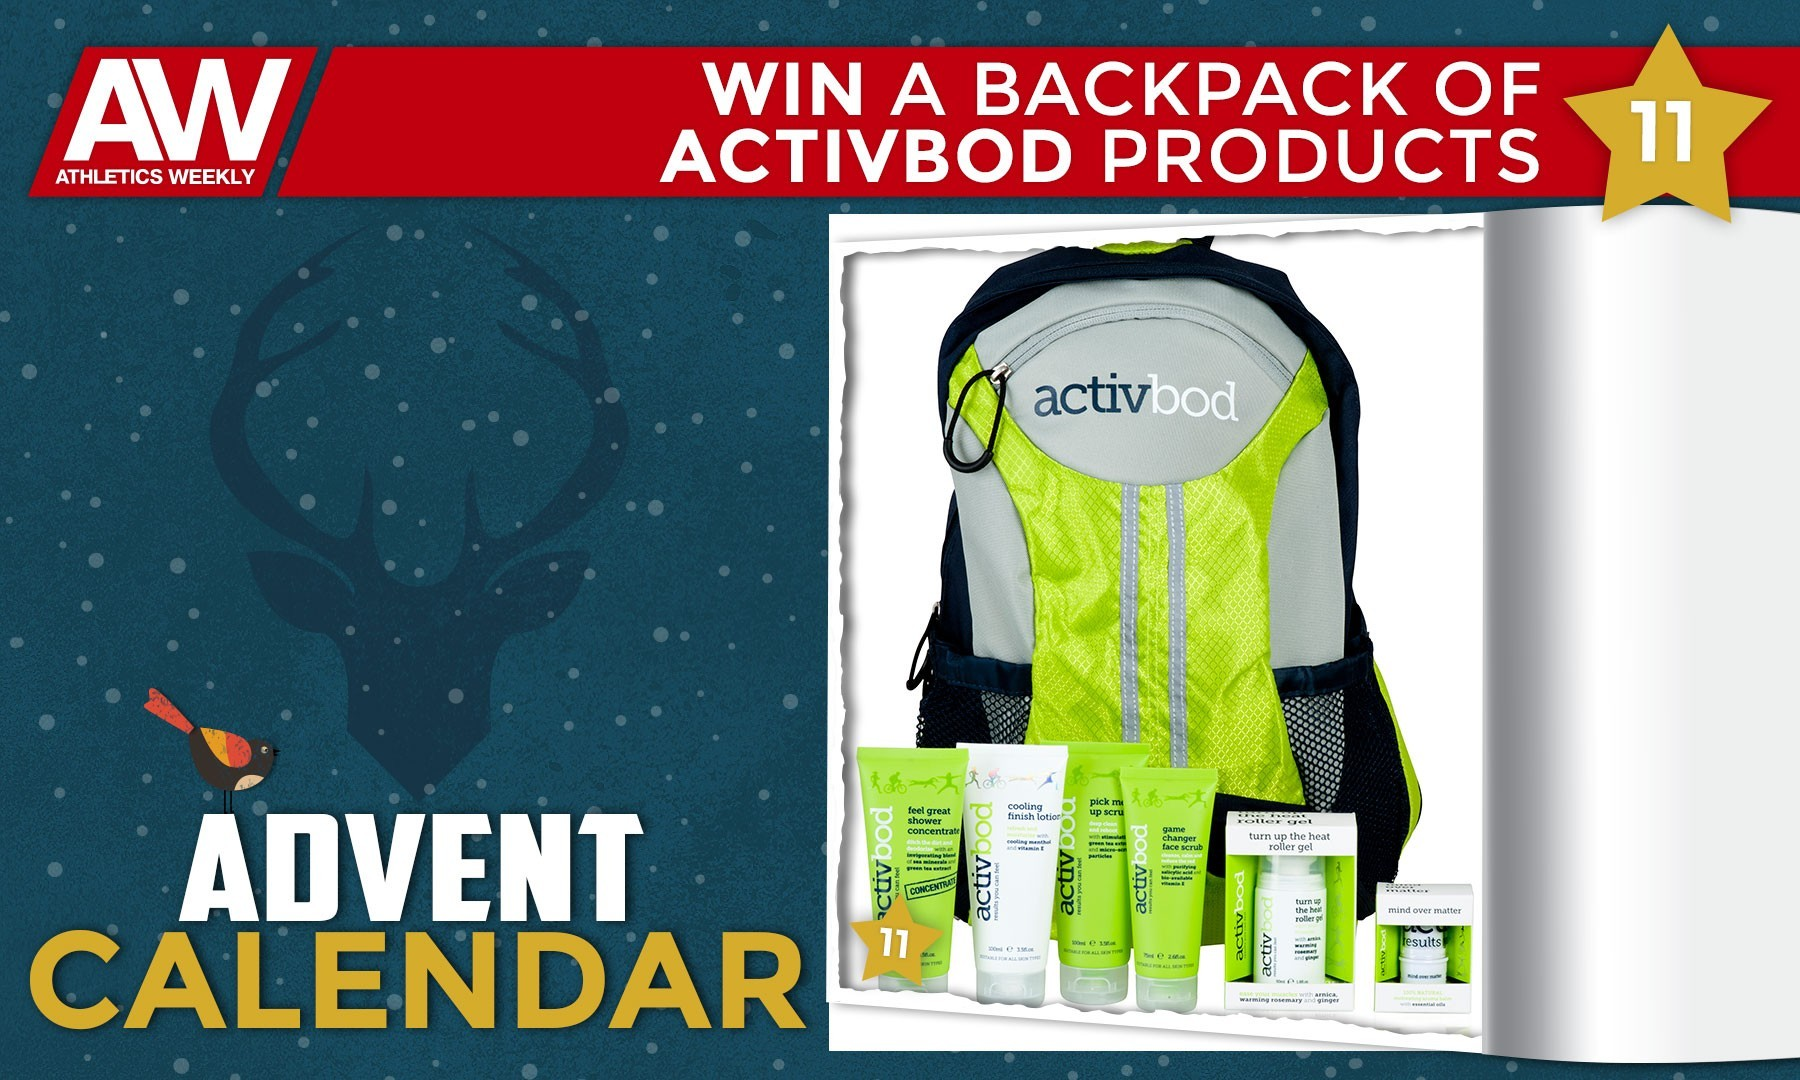 Win a selection of activbod products